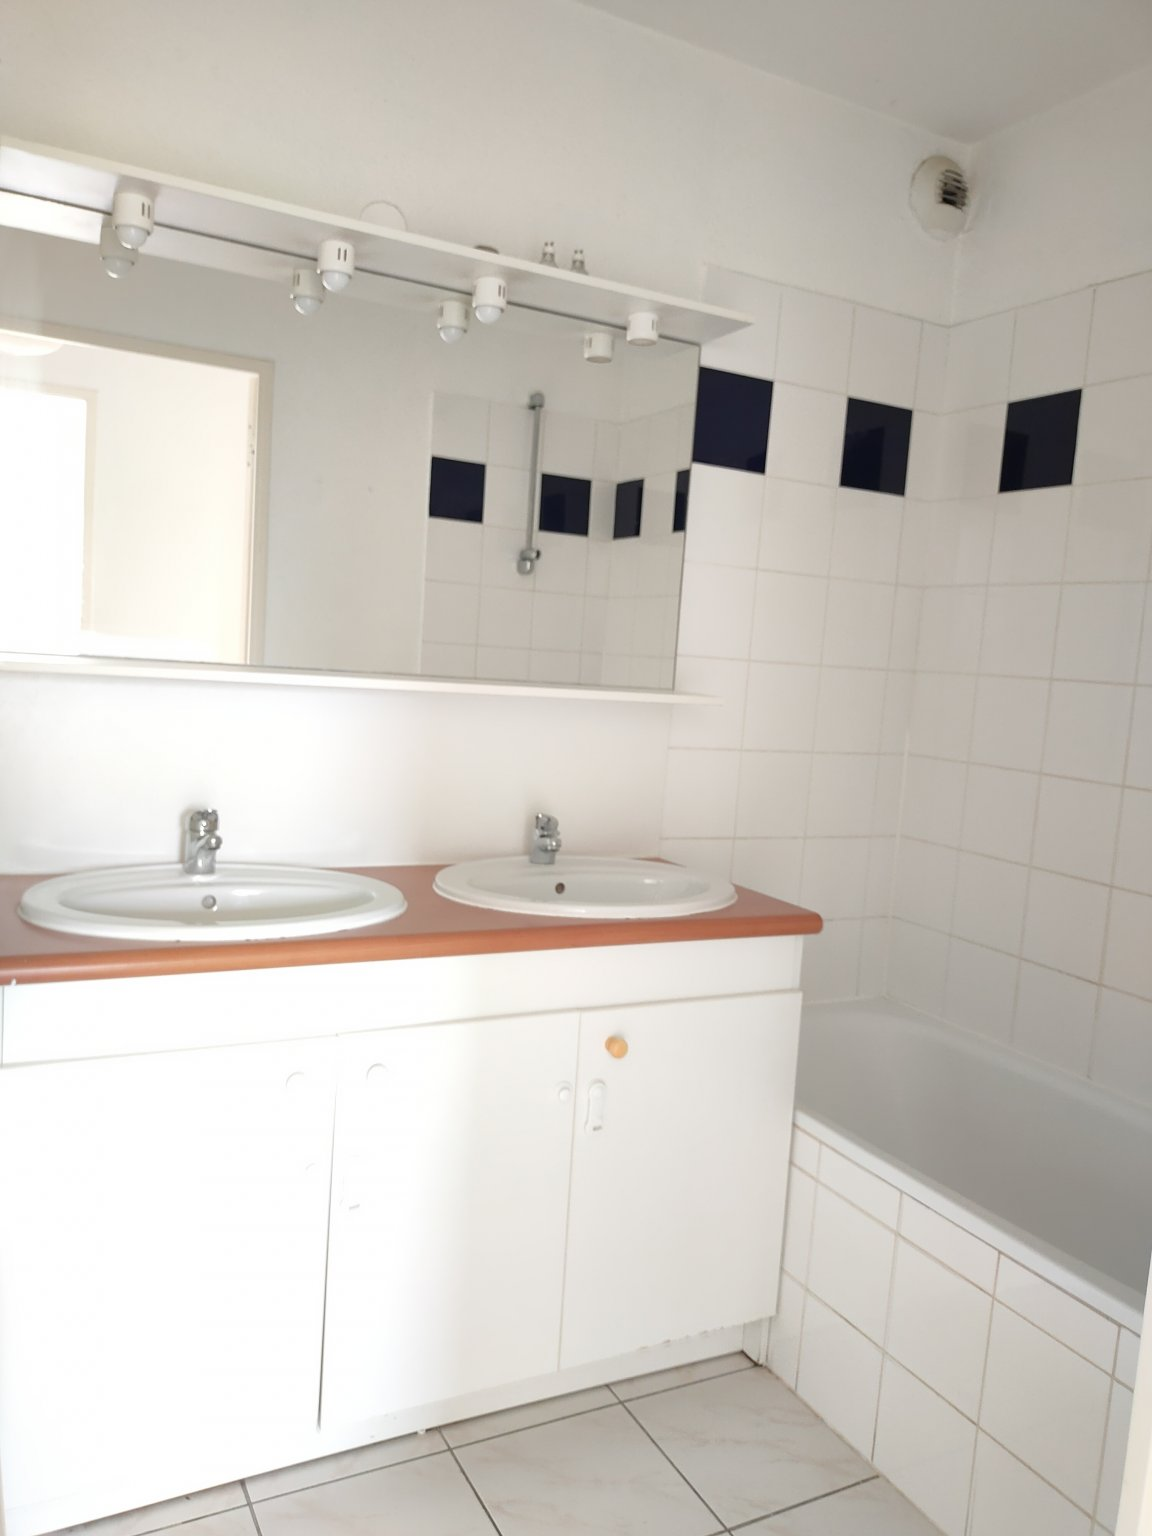 Vente appartement T3  à BEGLES - 7